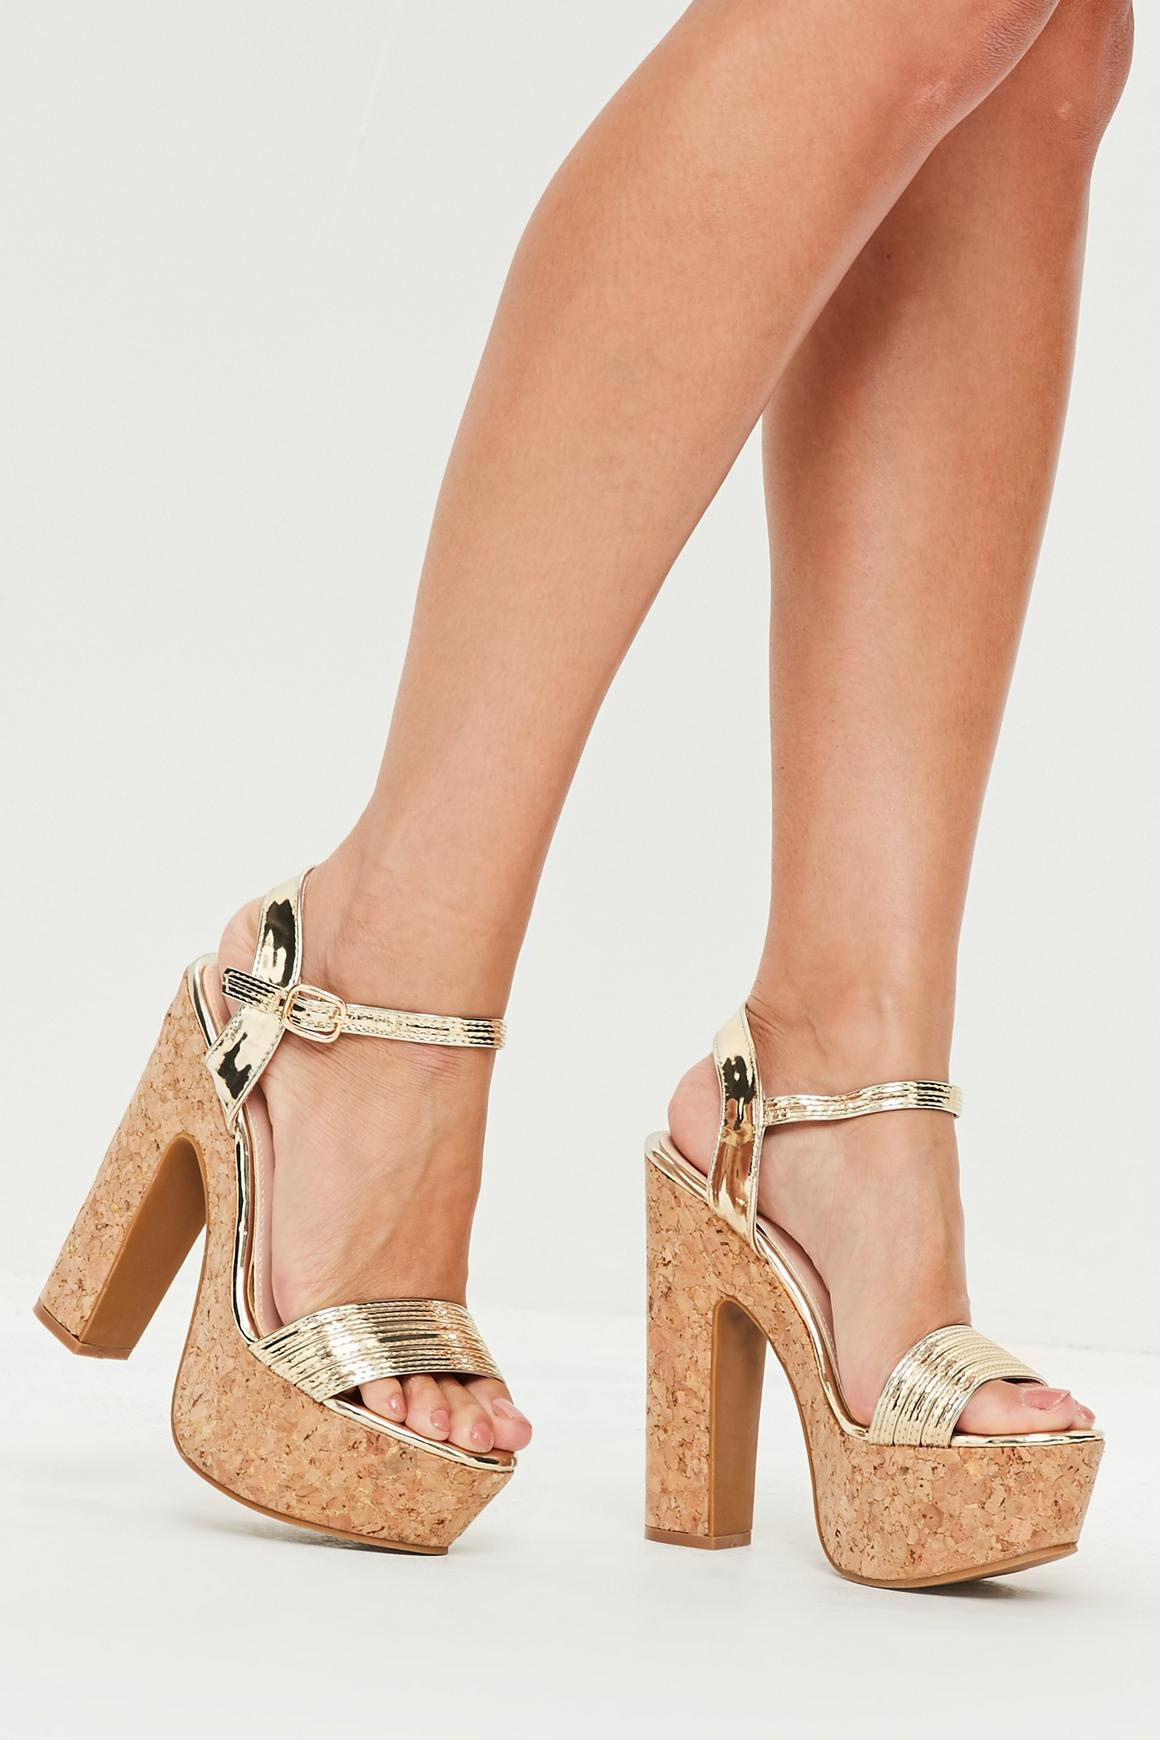 Gold Metallic Cork Platform Heeled Sandals | Missguided